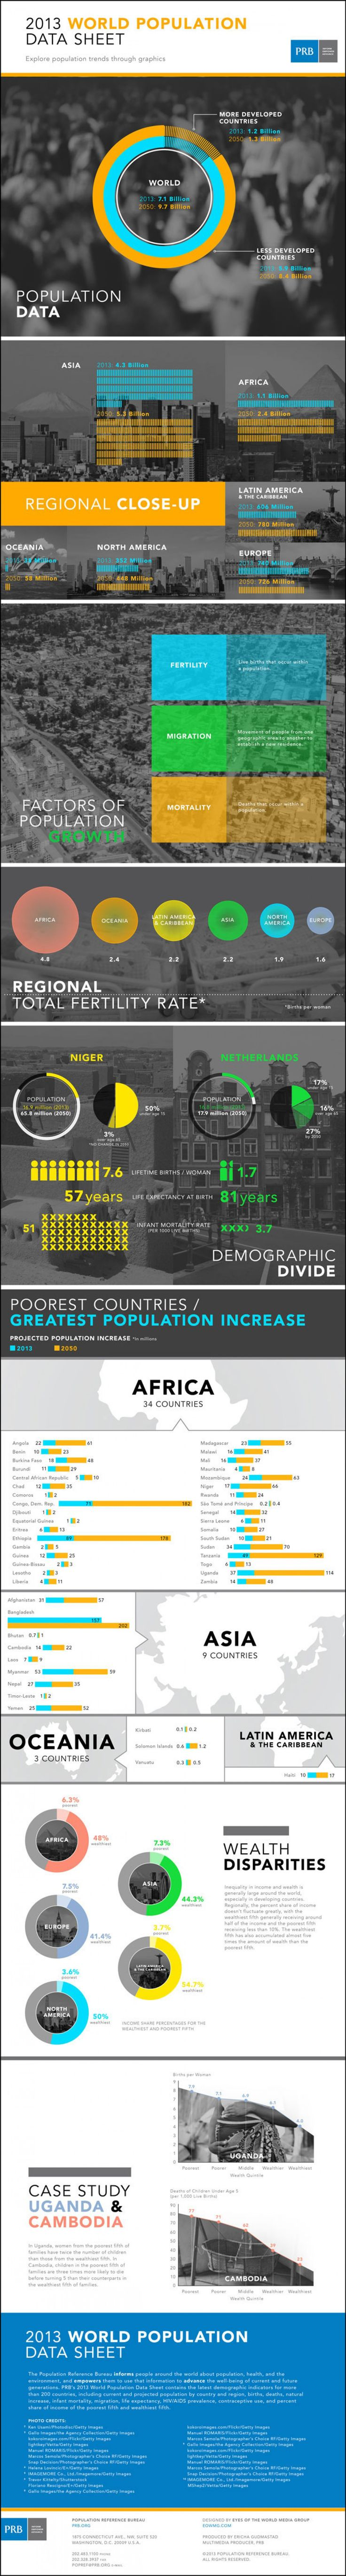 #World #Population Data Sheet 2013 – #Infographic by PRB.org